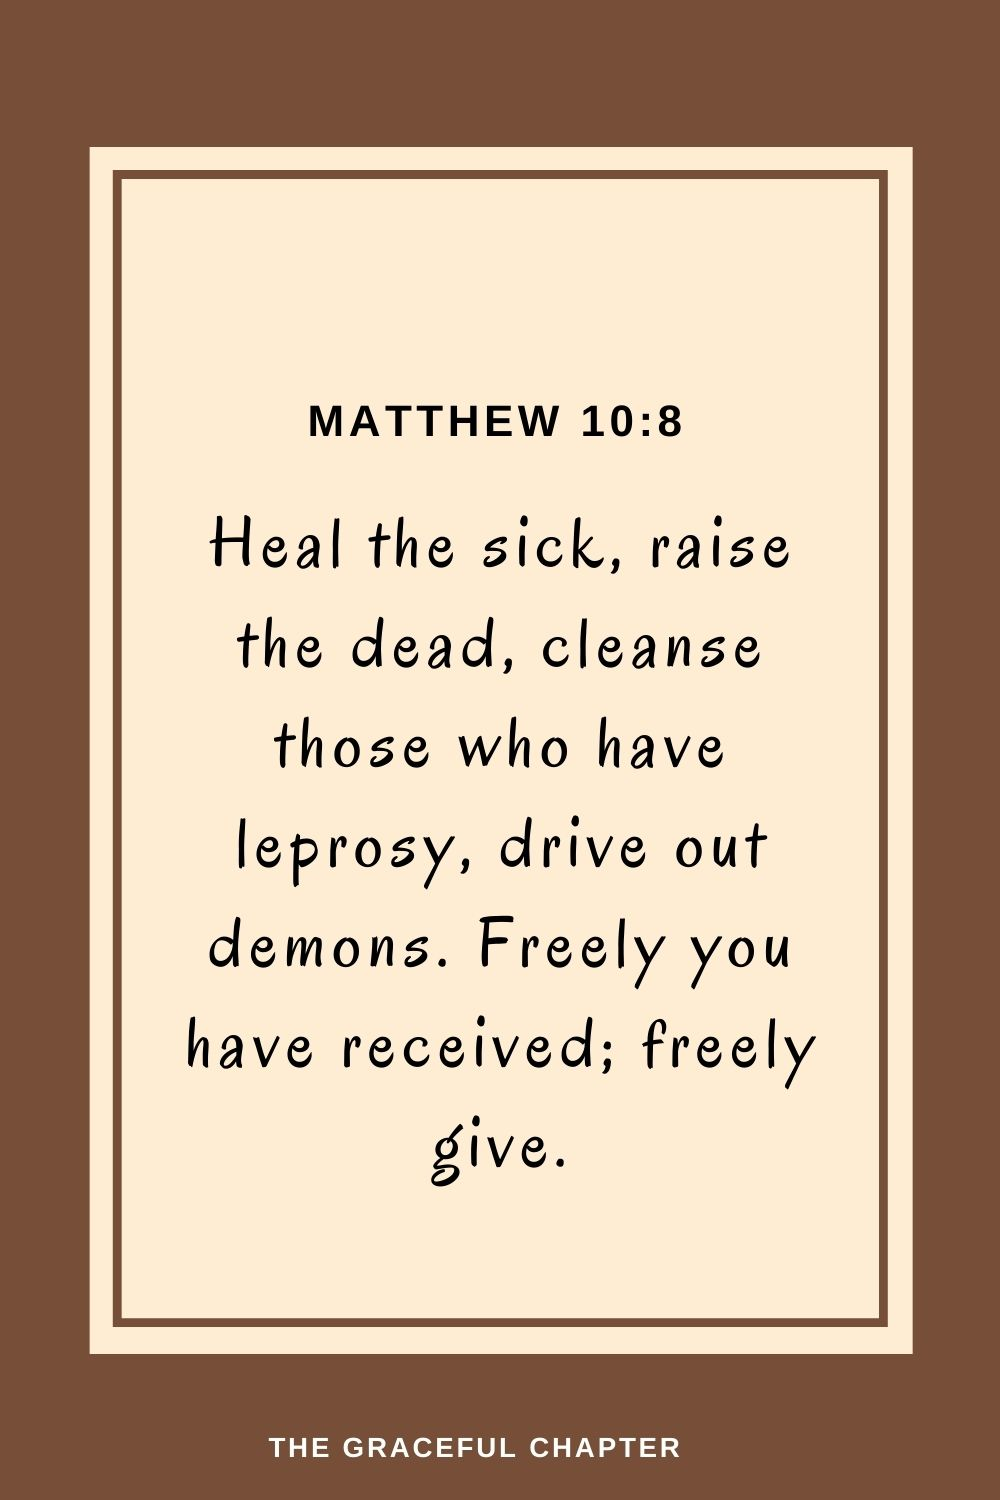 Heal the sick, raise the dead, cleanse those who have leprosy, drive out demons. Freely you have received; freely give. Matthew 10:8